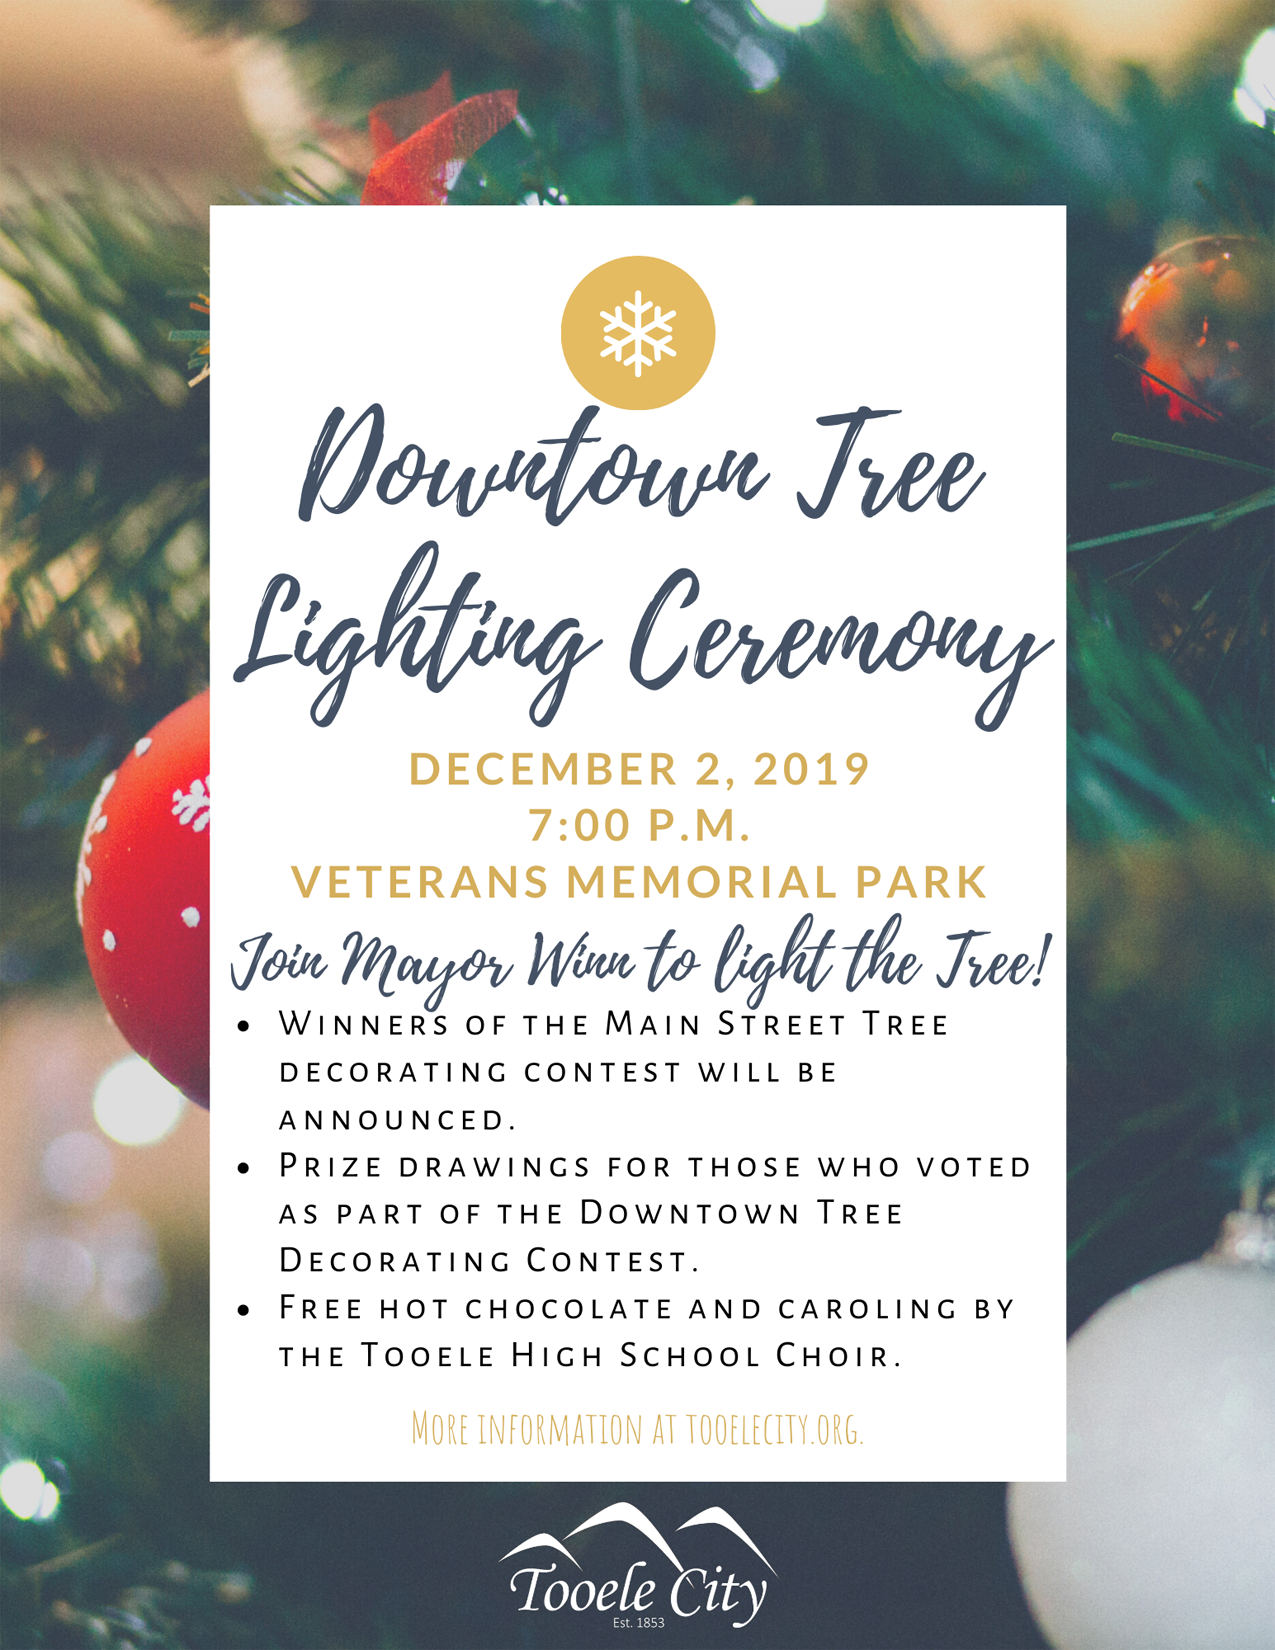 Downtown Tree Lighting Ceremony @ Veterans Memorial Park